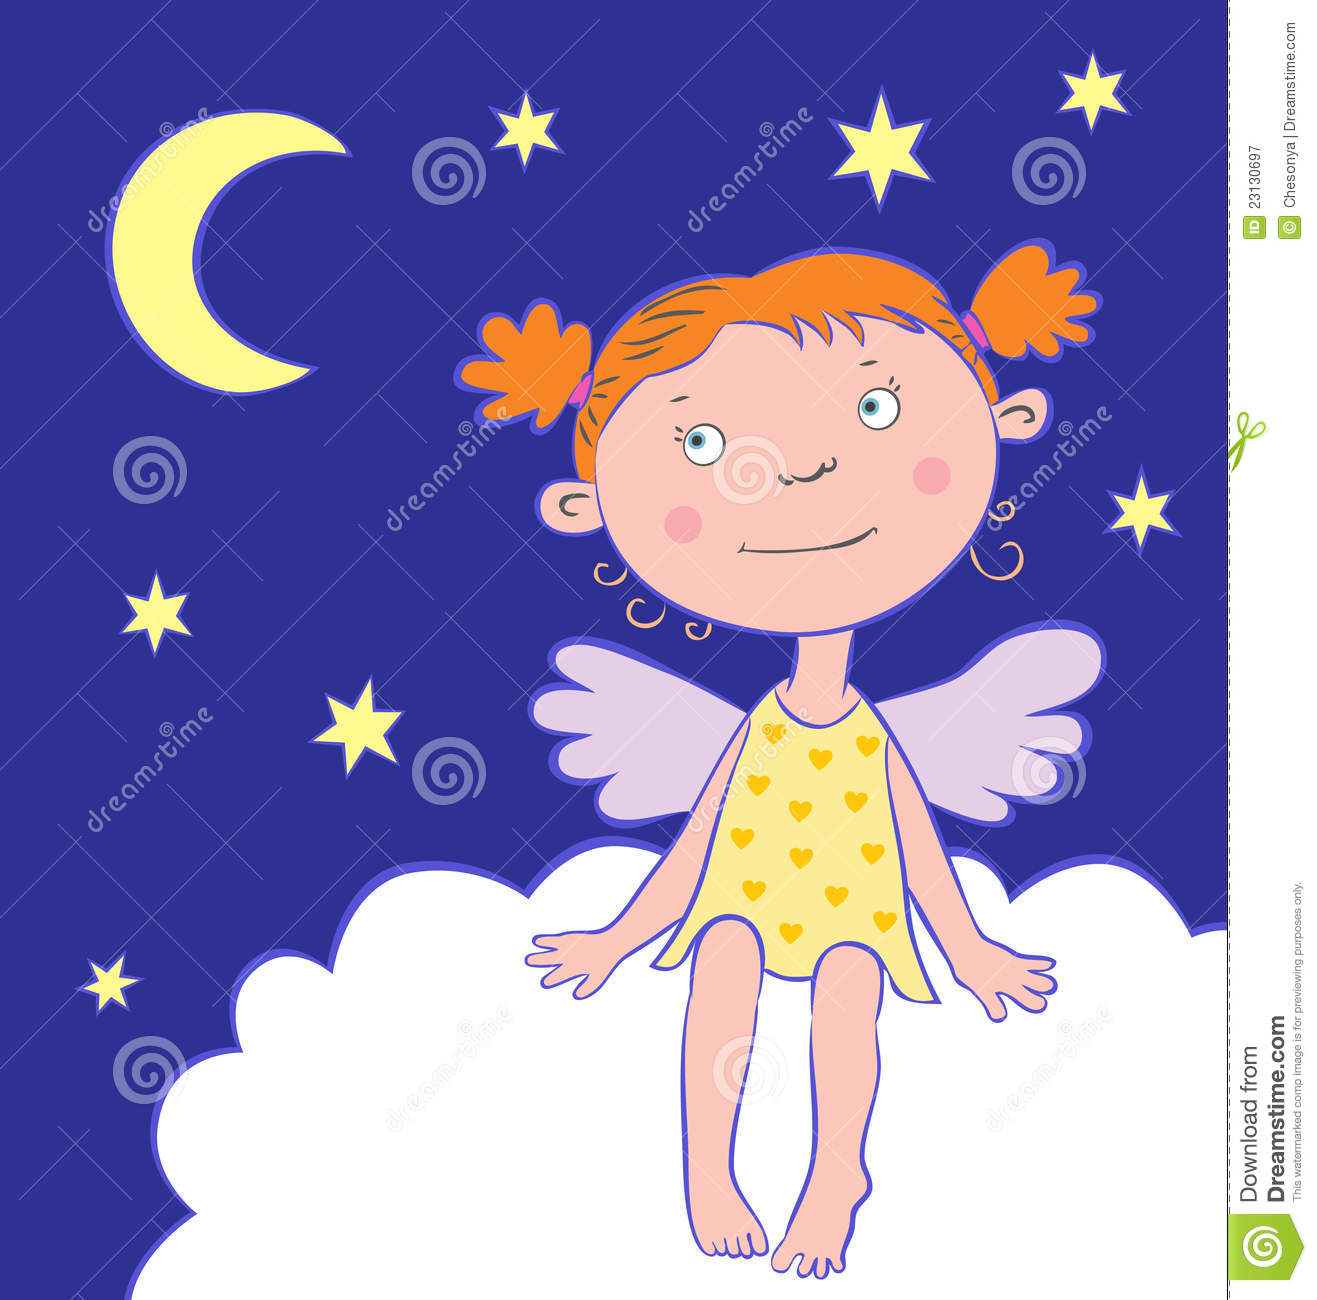 Kids at night with moon royalty free stock photography image - Royalty Free Stock Photo Angel Card Girl Moon Night